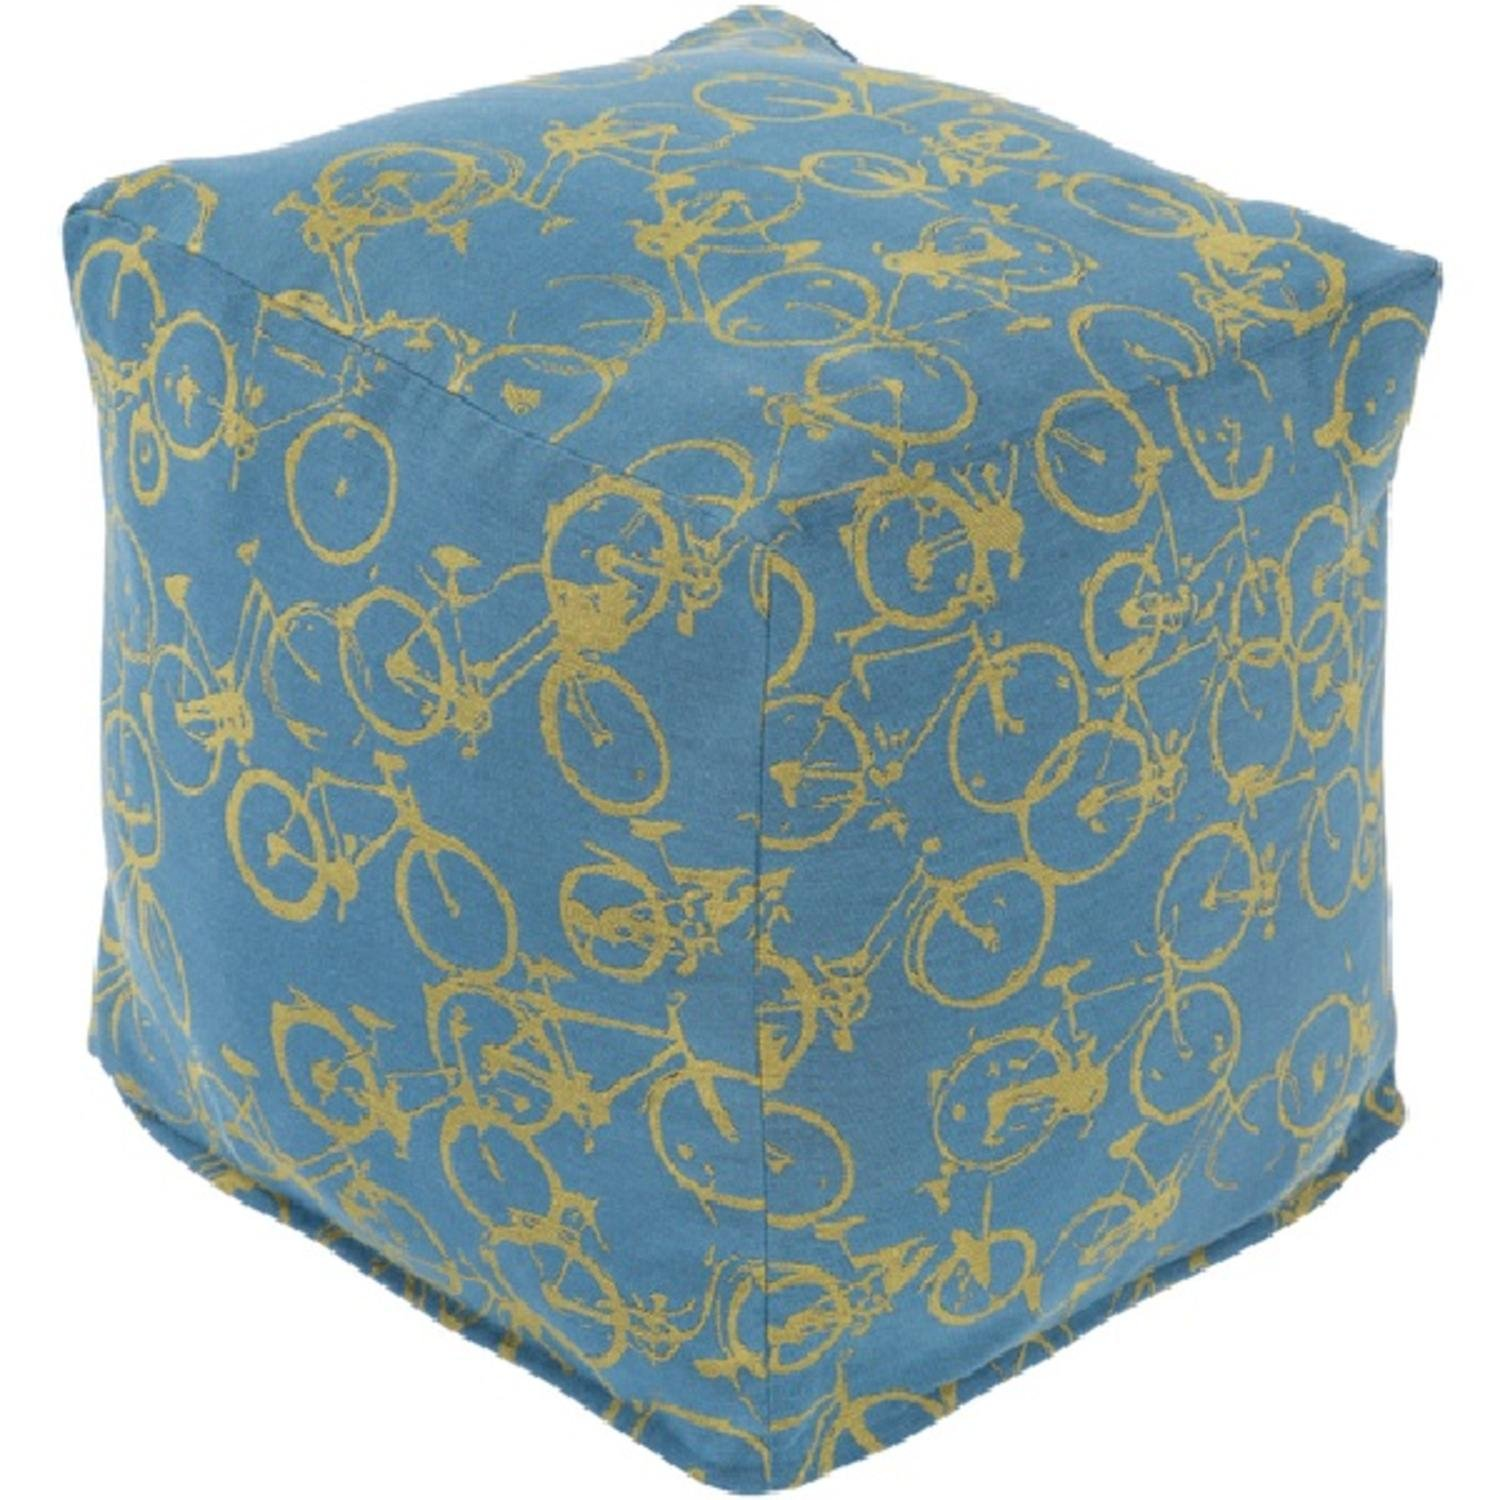 18'' Peddle Power Lime and Sky Blue Whimsical Square Pouf Ottoman